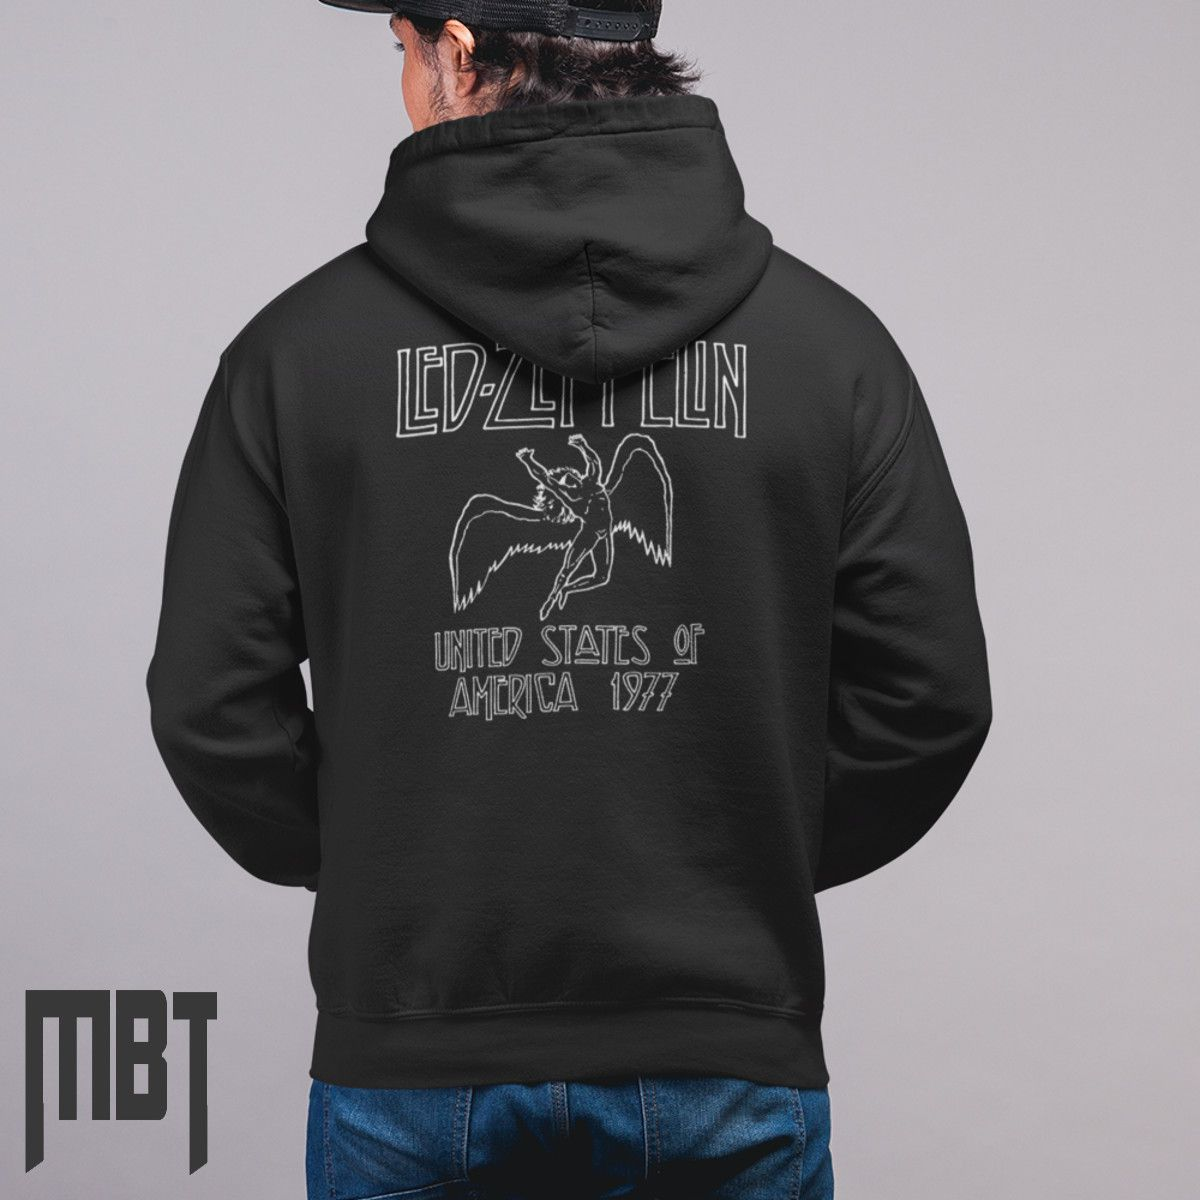 cf9fe0e4e90 Led zeppelin band hoodie led zeppelin usa logo hooded jpg 1200x1200 Led  zeppelin sweatshirt